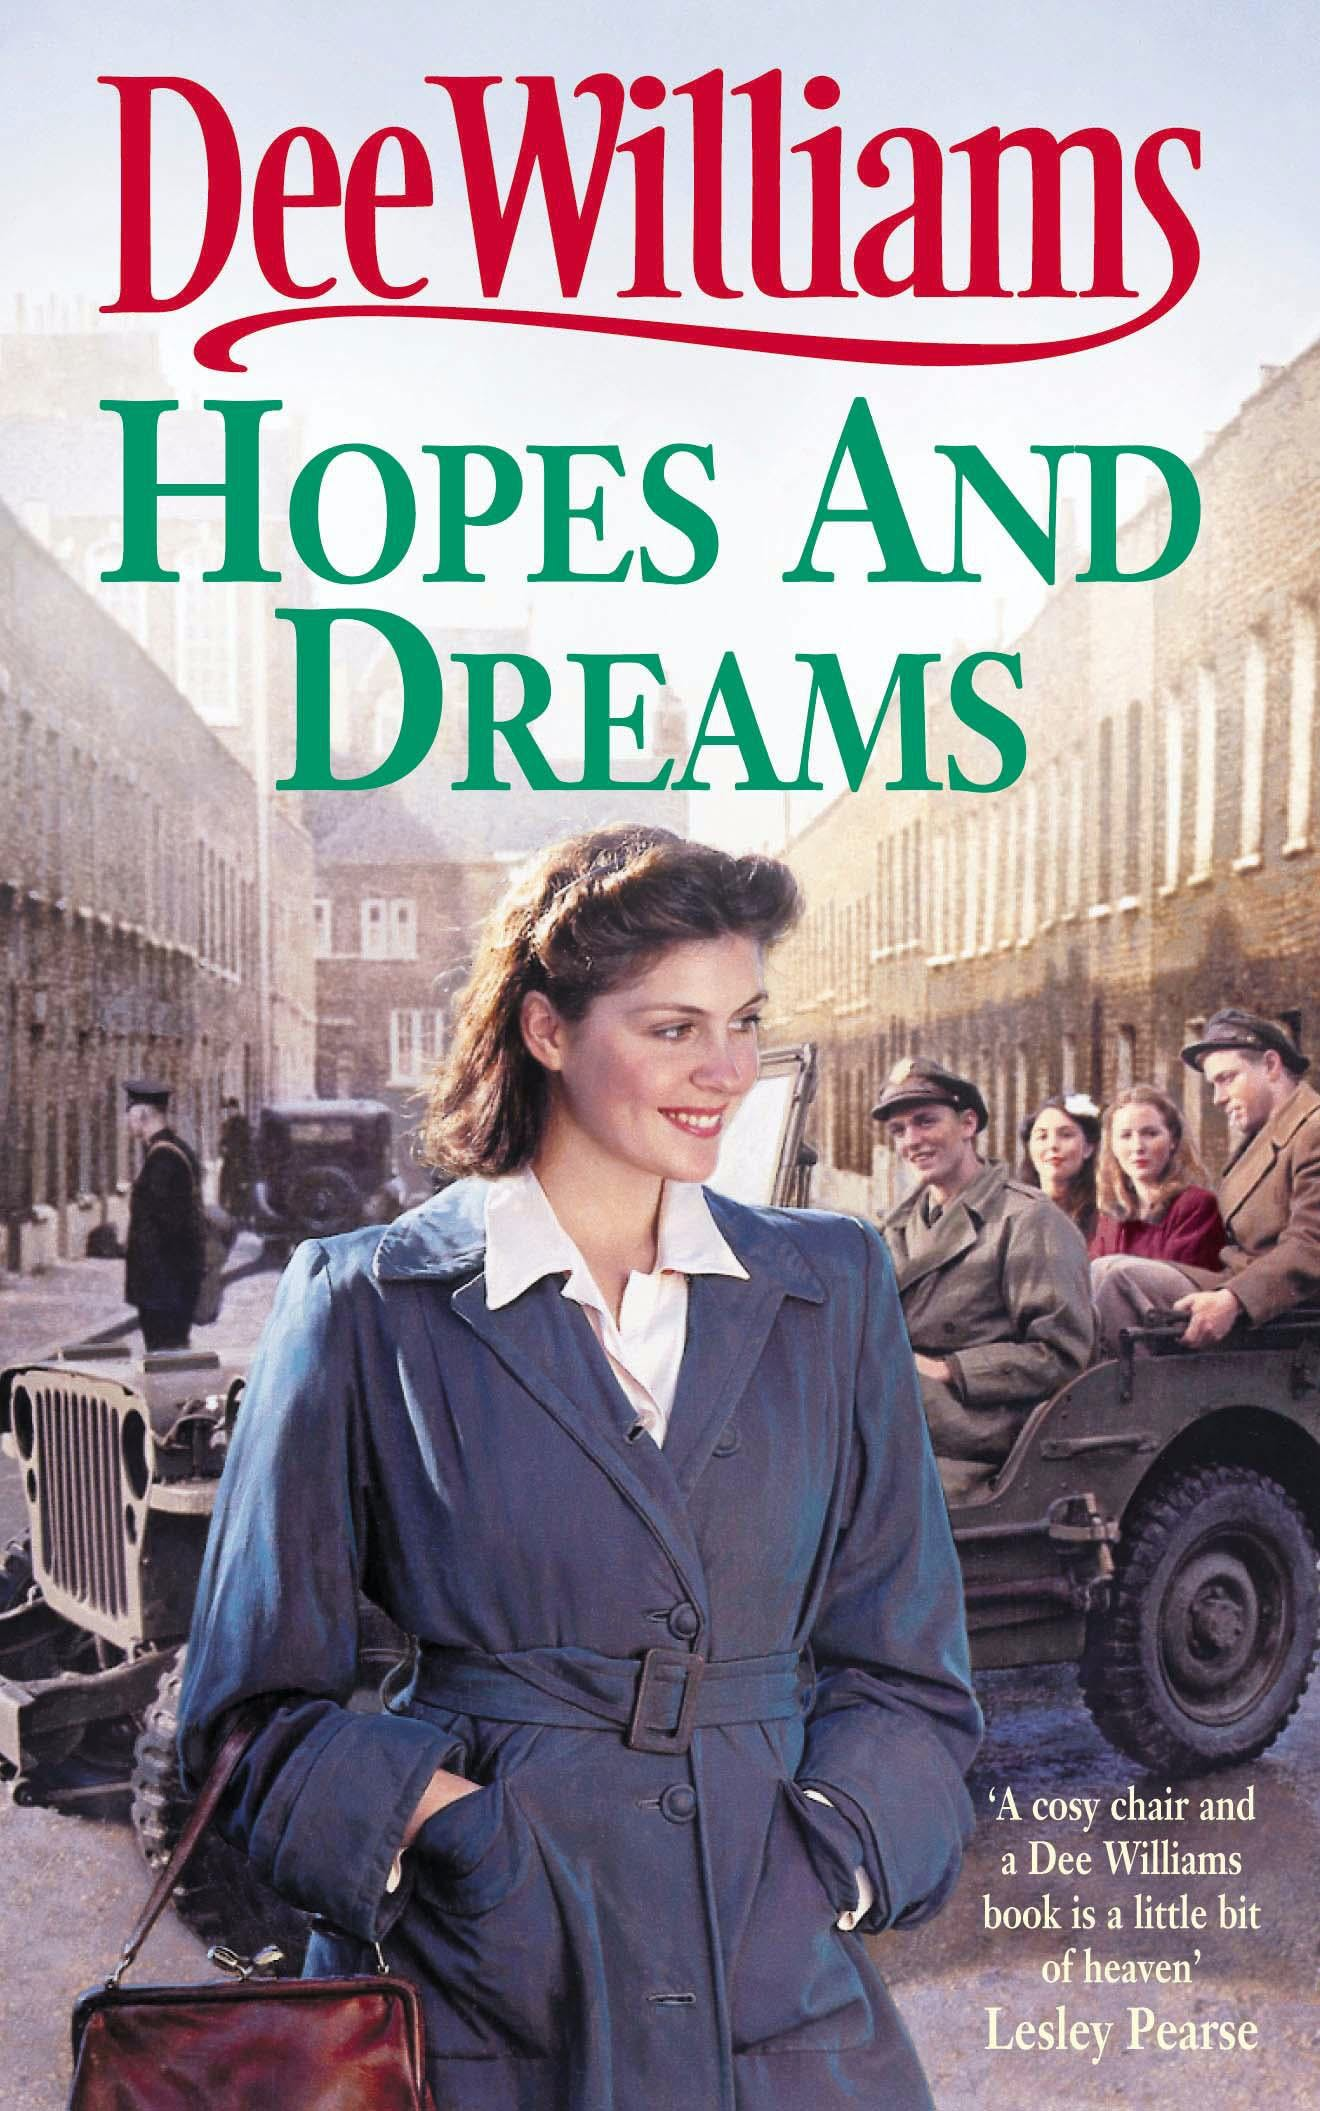 Hopes and Dreams: War breaks both hearts and dreams by Dee